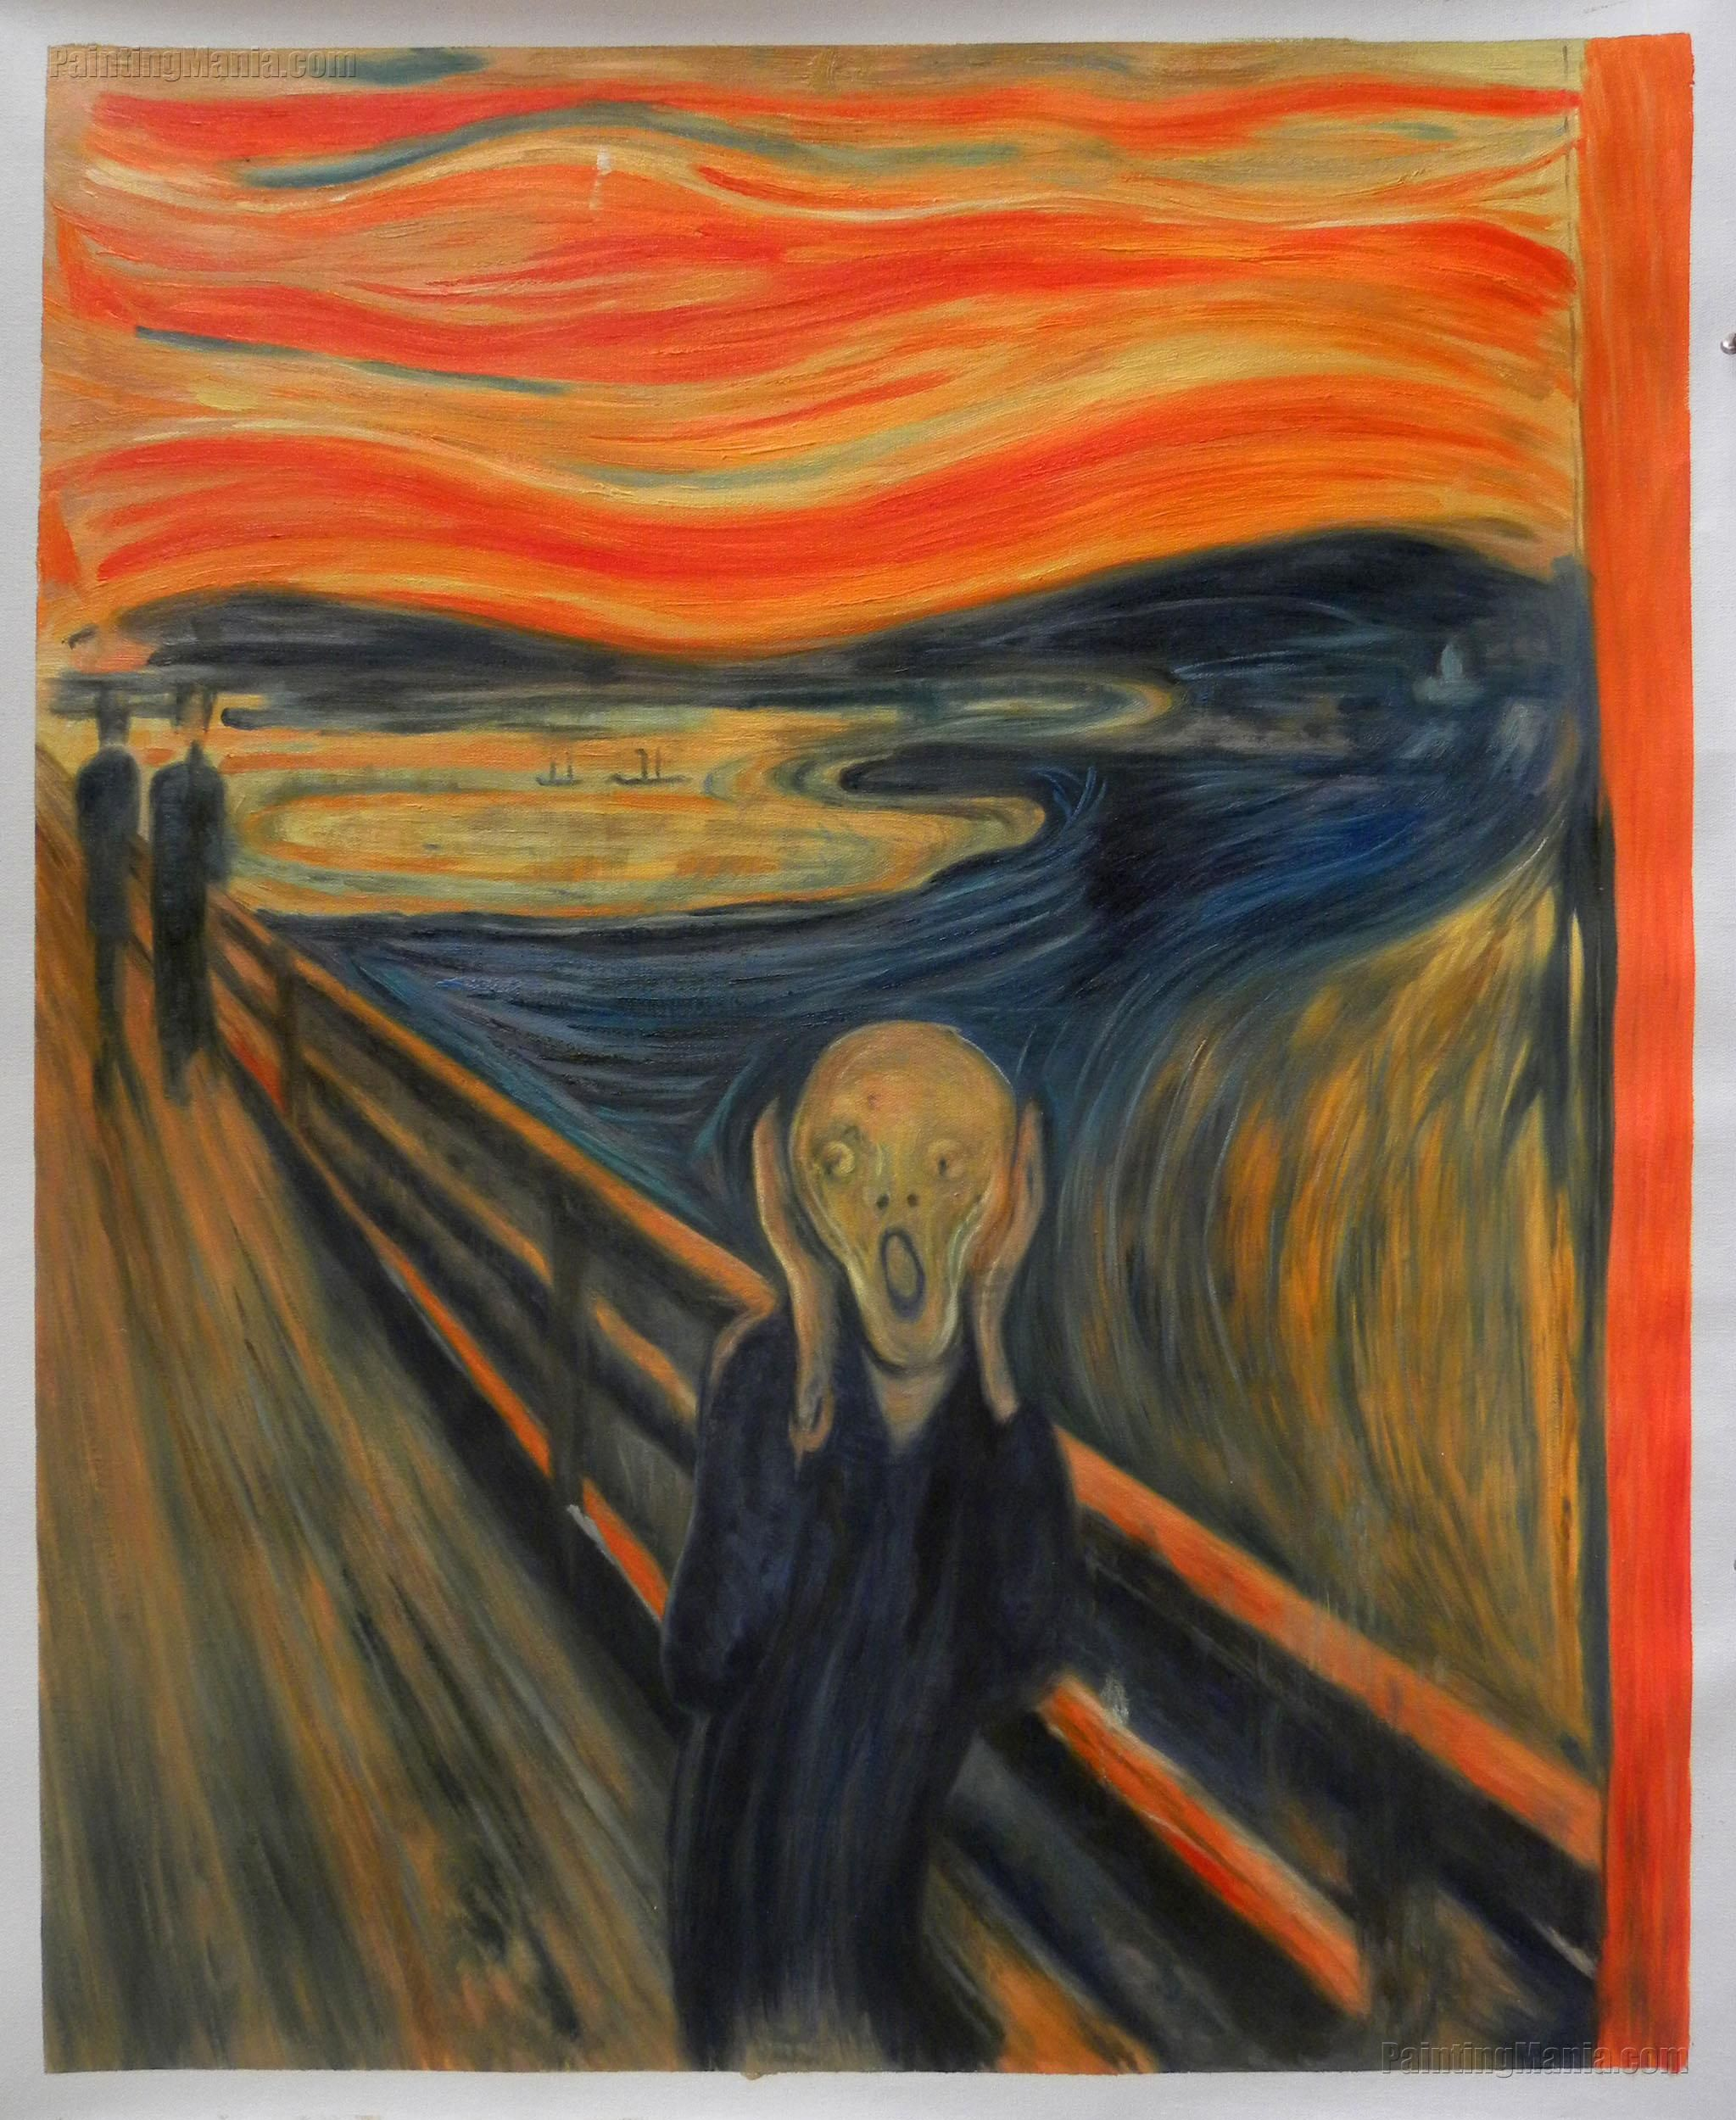 impact of edvard munch s the scream The scream (1892), by edvard munch, depicts a figure holding its face, which   but look above this individual and the sky is full of colourful wavy lines  would  have had a big impact on anyone who saw them for the first time.